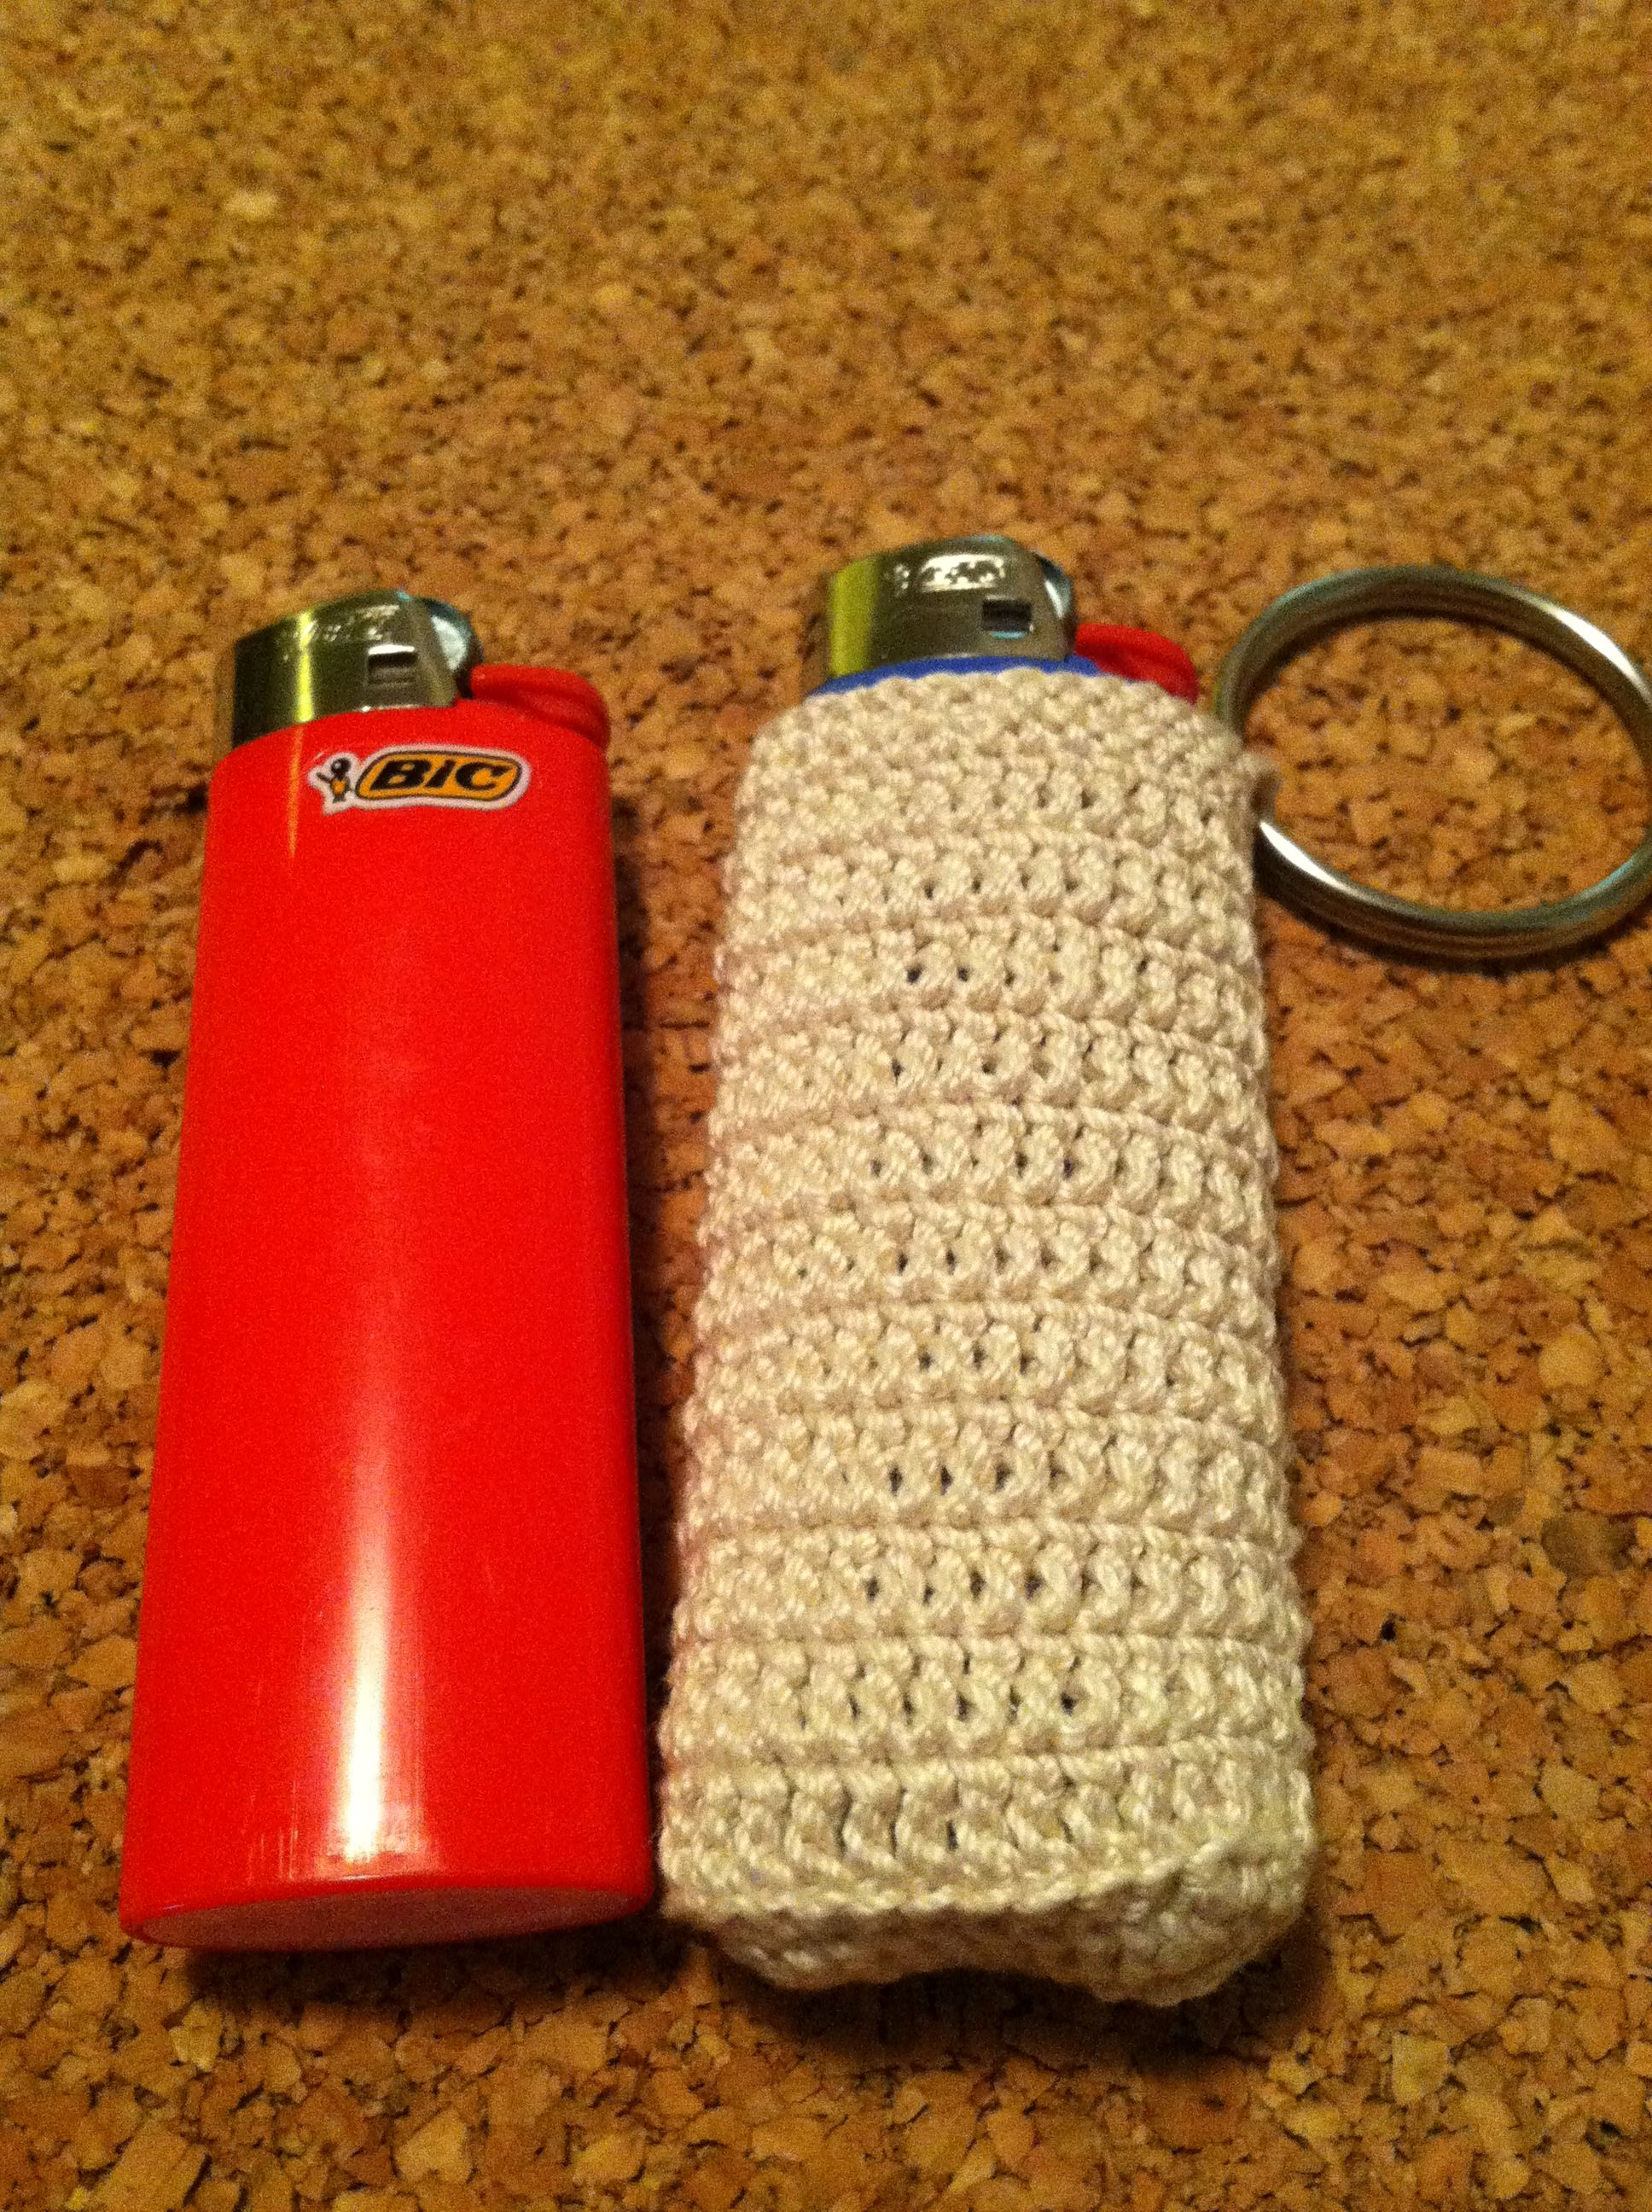 Large Crochet Lighter Holder Crochet Blanket Afghan Diy Barefoot Sandals Crochet Bag